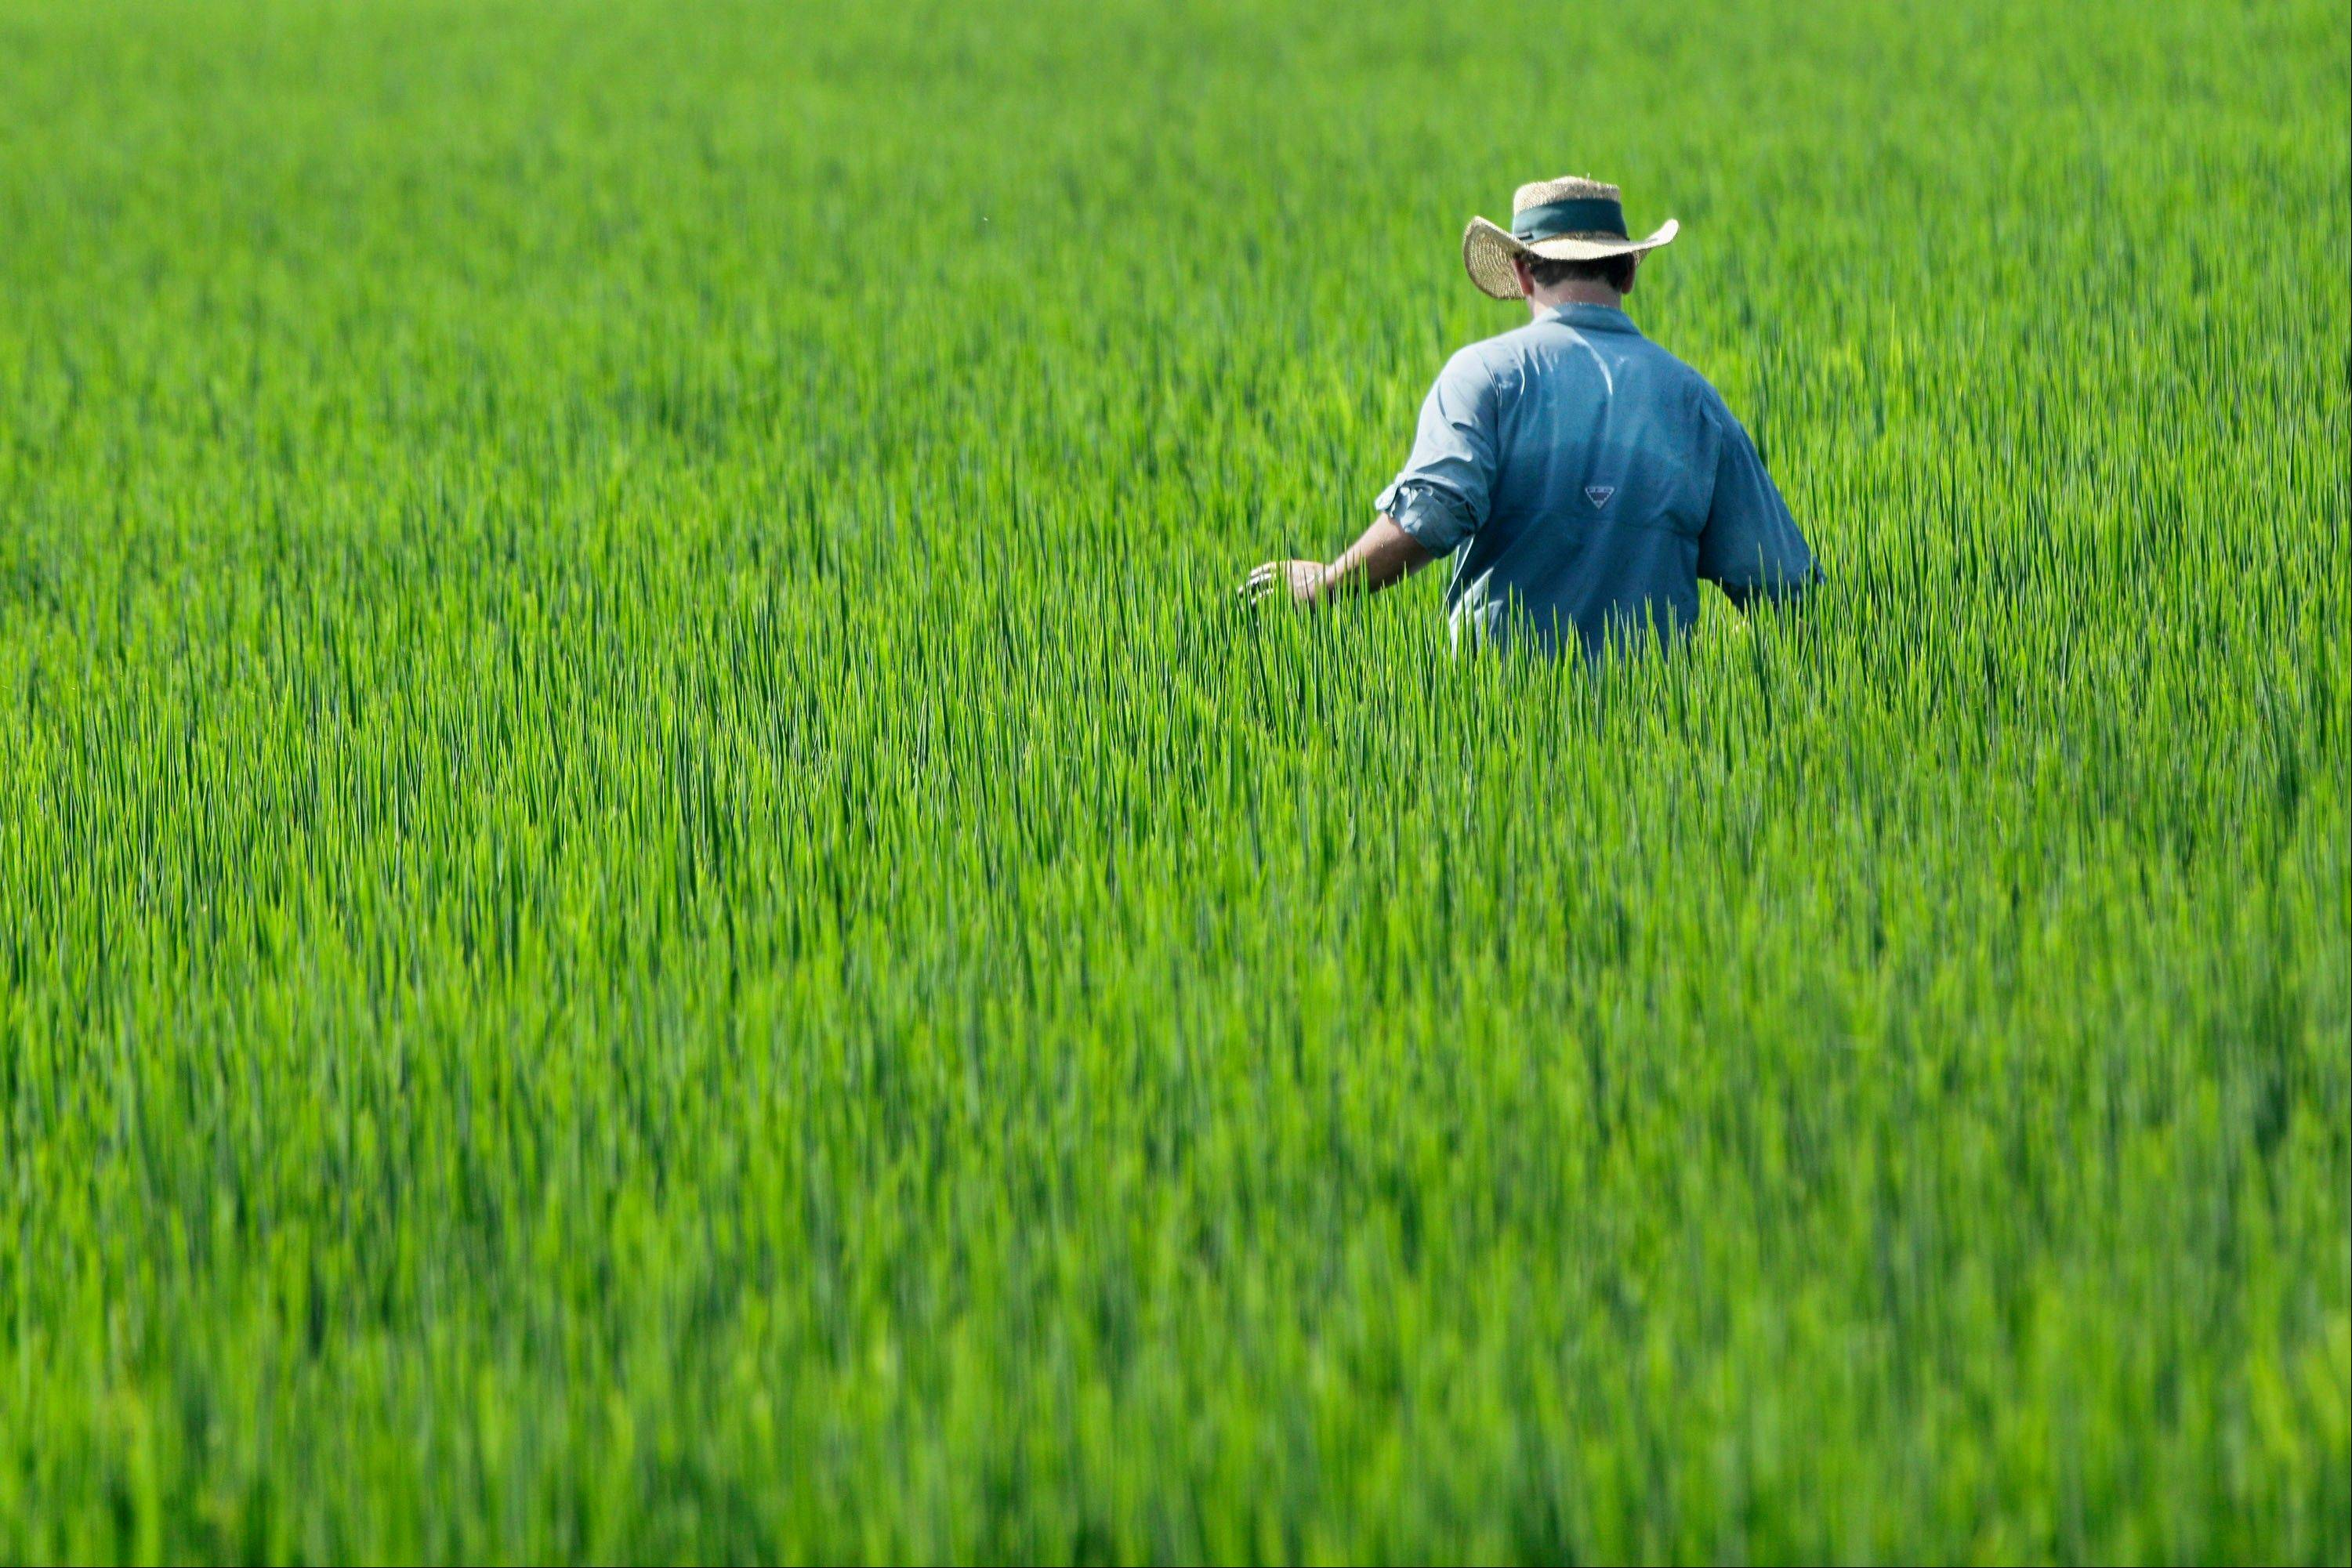 Farmer Ben Burgess examines a rice field near Coy, Ark.